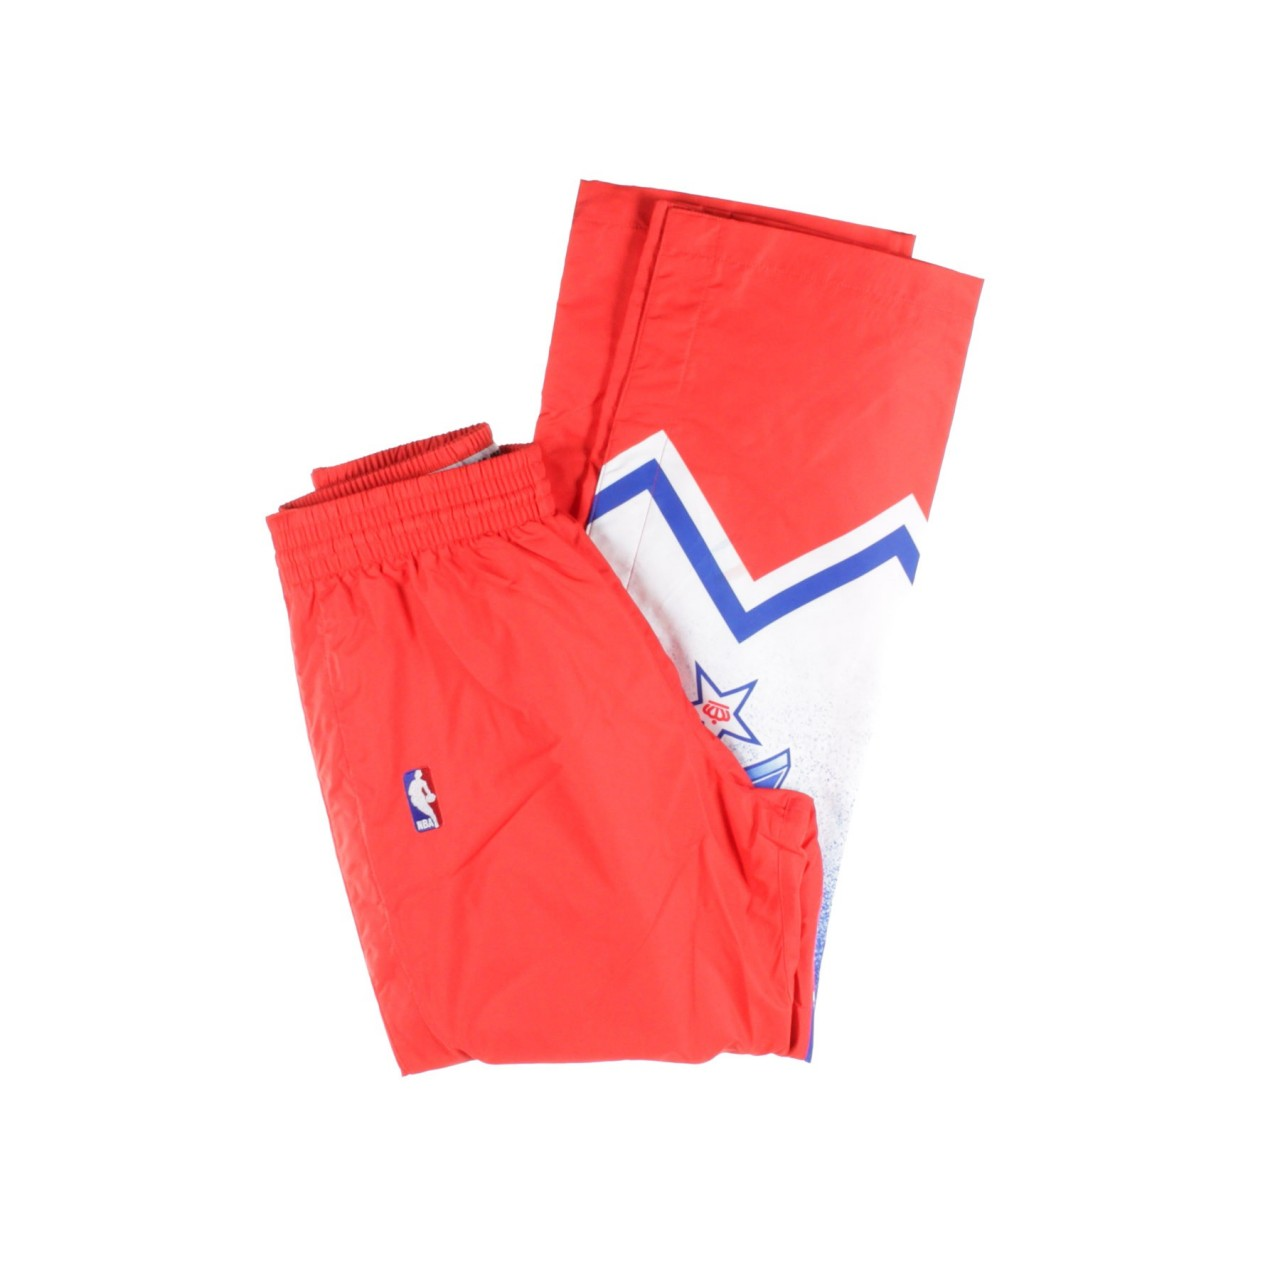 MITCHELL & NESS ALL STAR WARM UP PANTS ALL STAR GAME WEST 1991 AWPTGS18002-ASWSCAR91